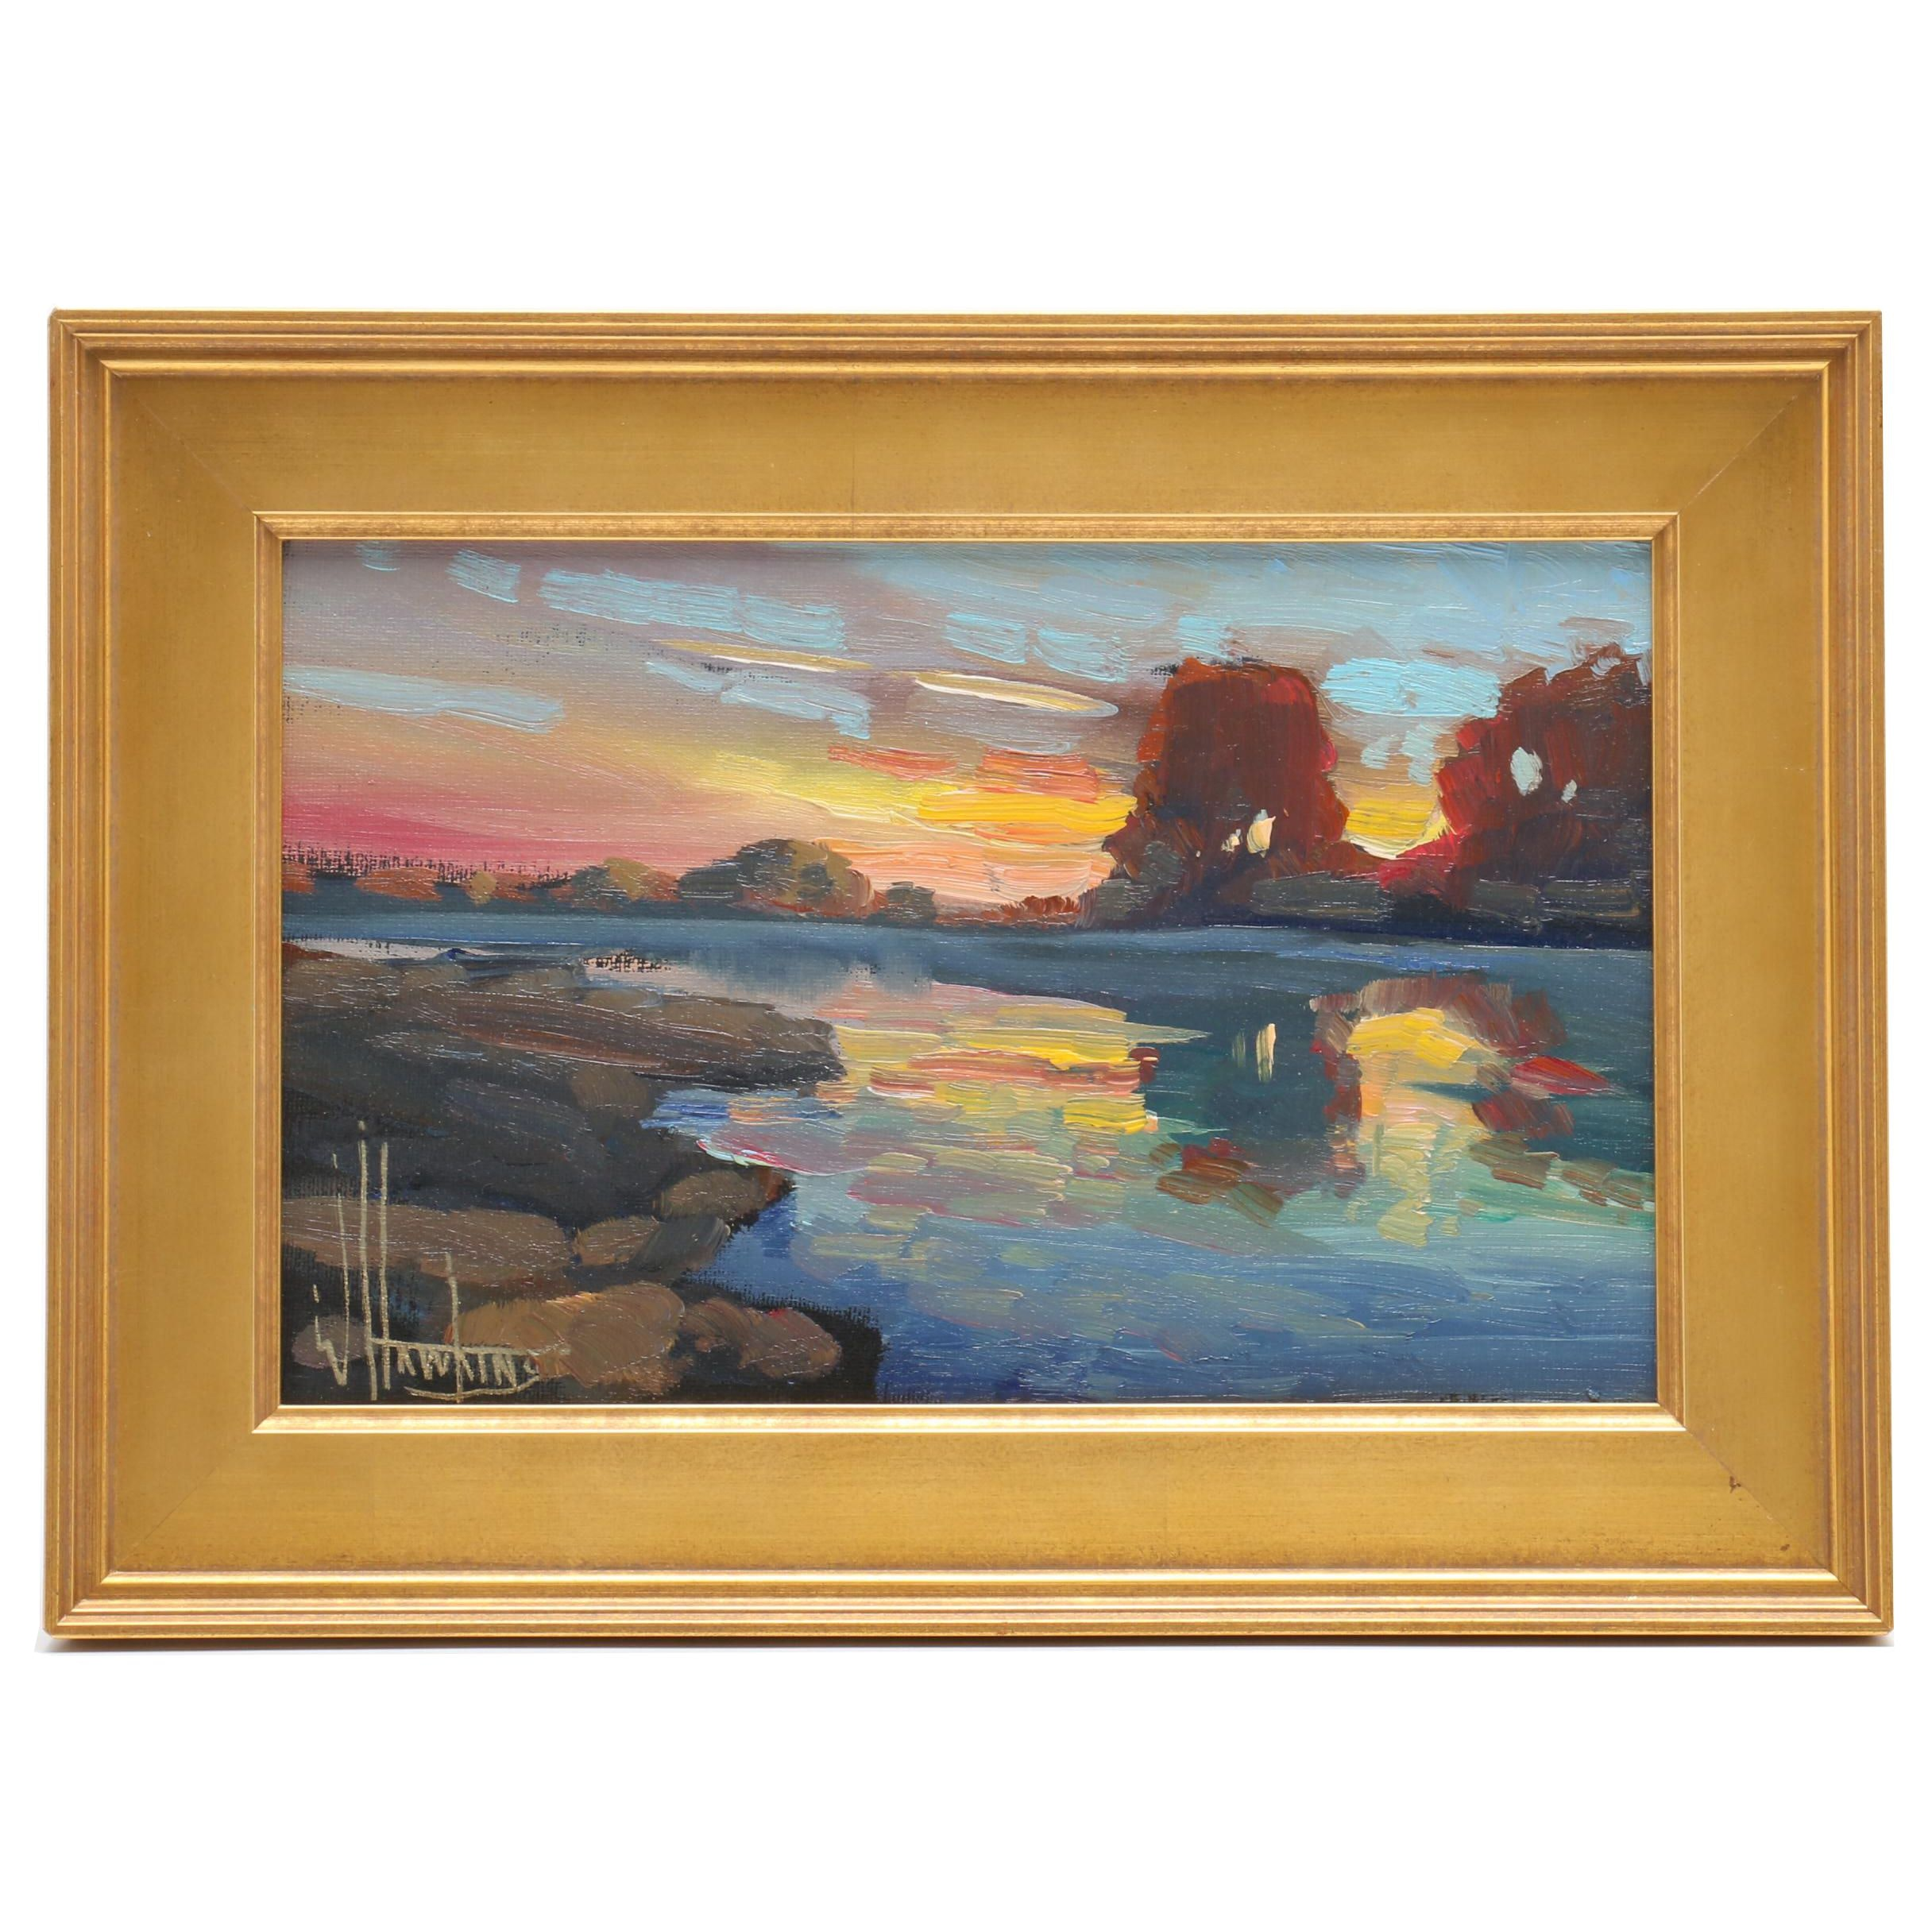 William Hawkins Landscape Oil Painting